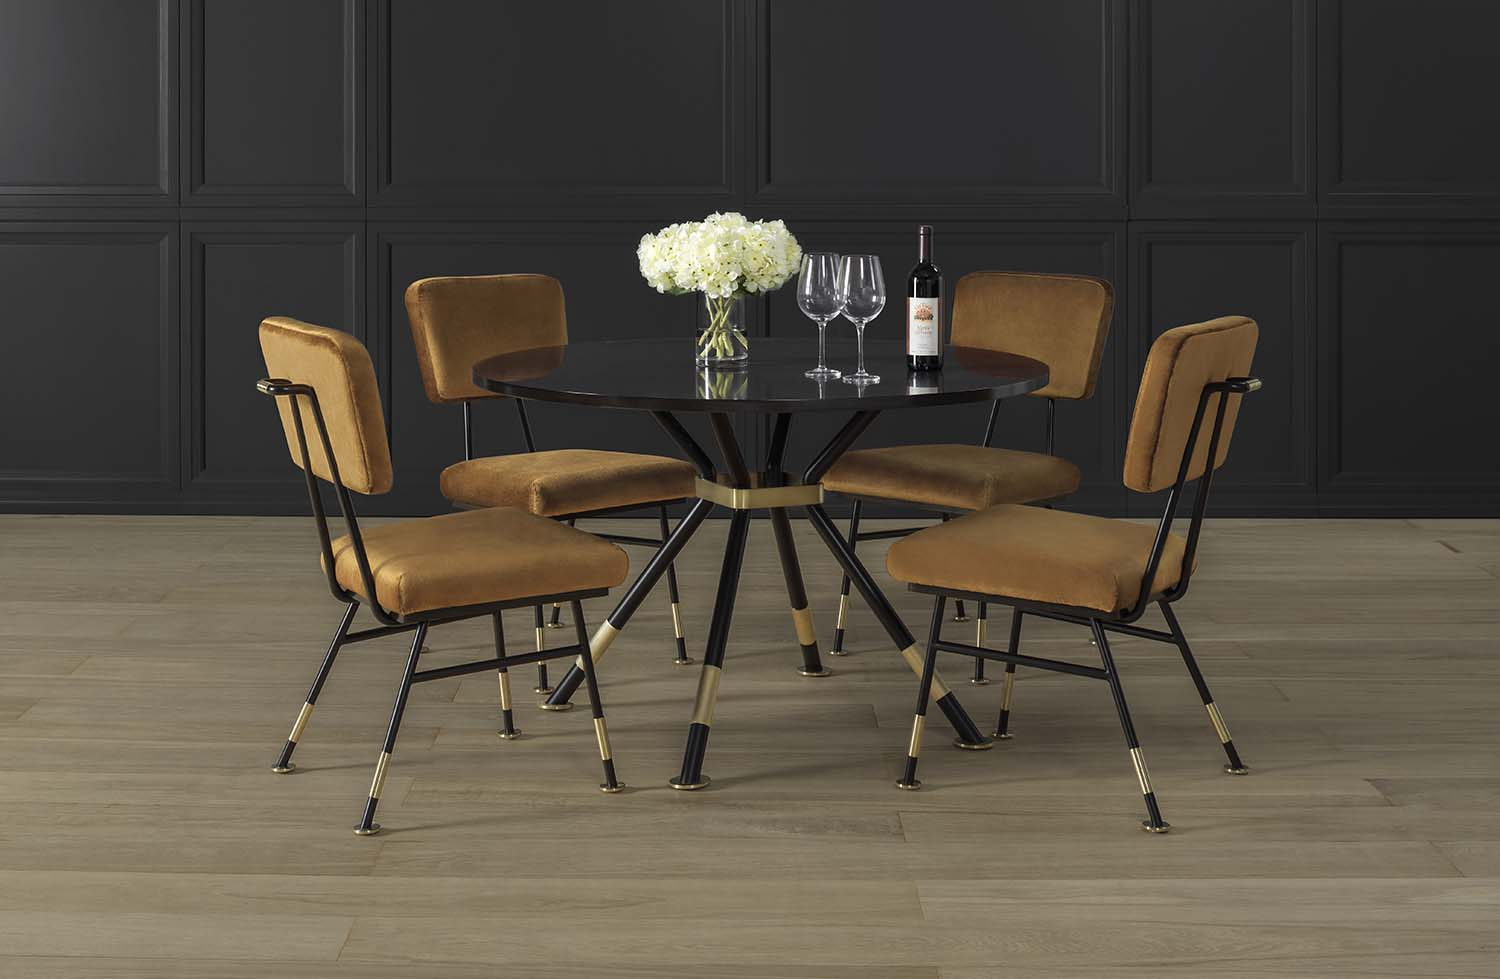 The London Collection dining set